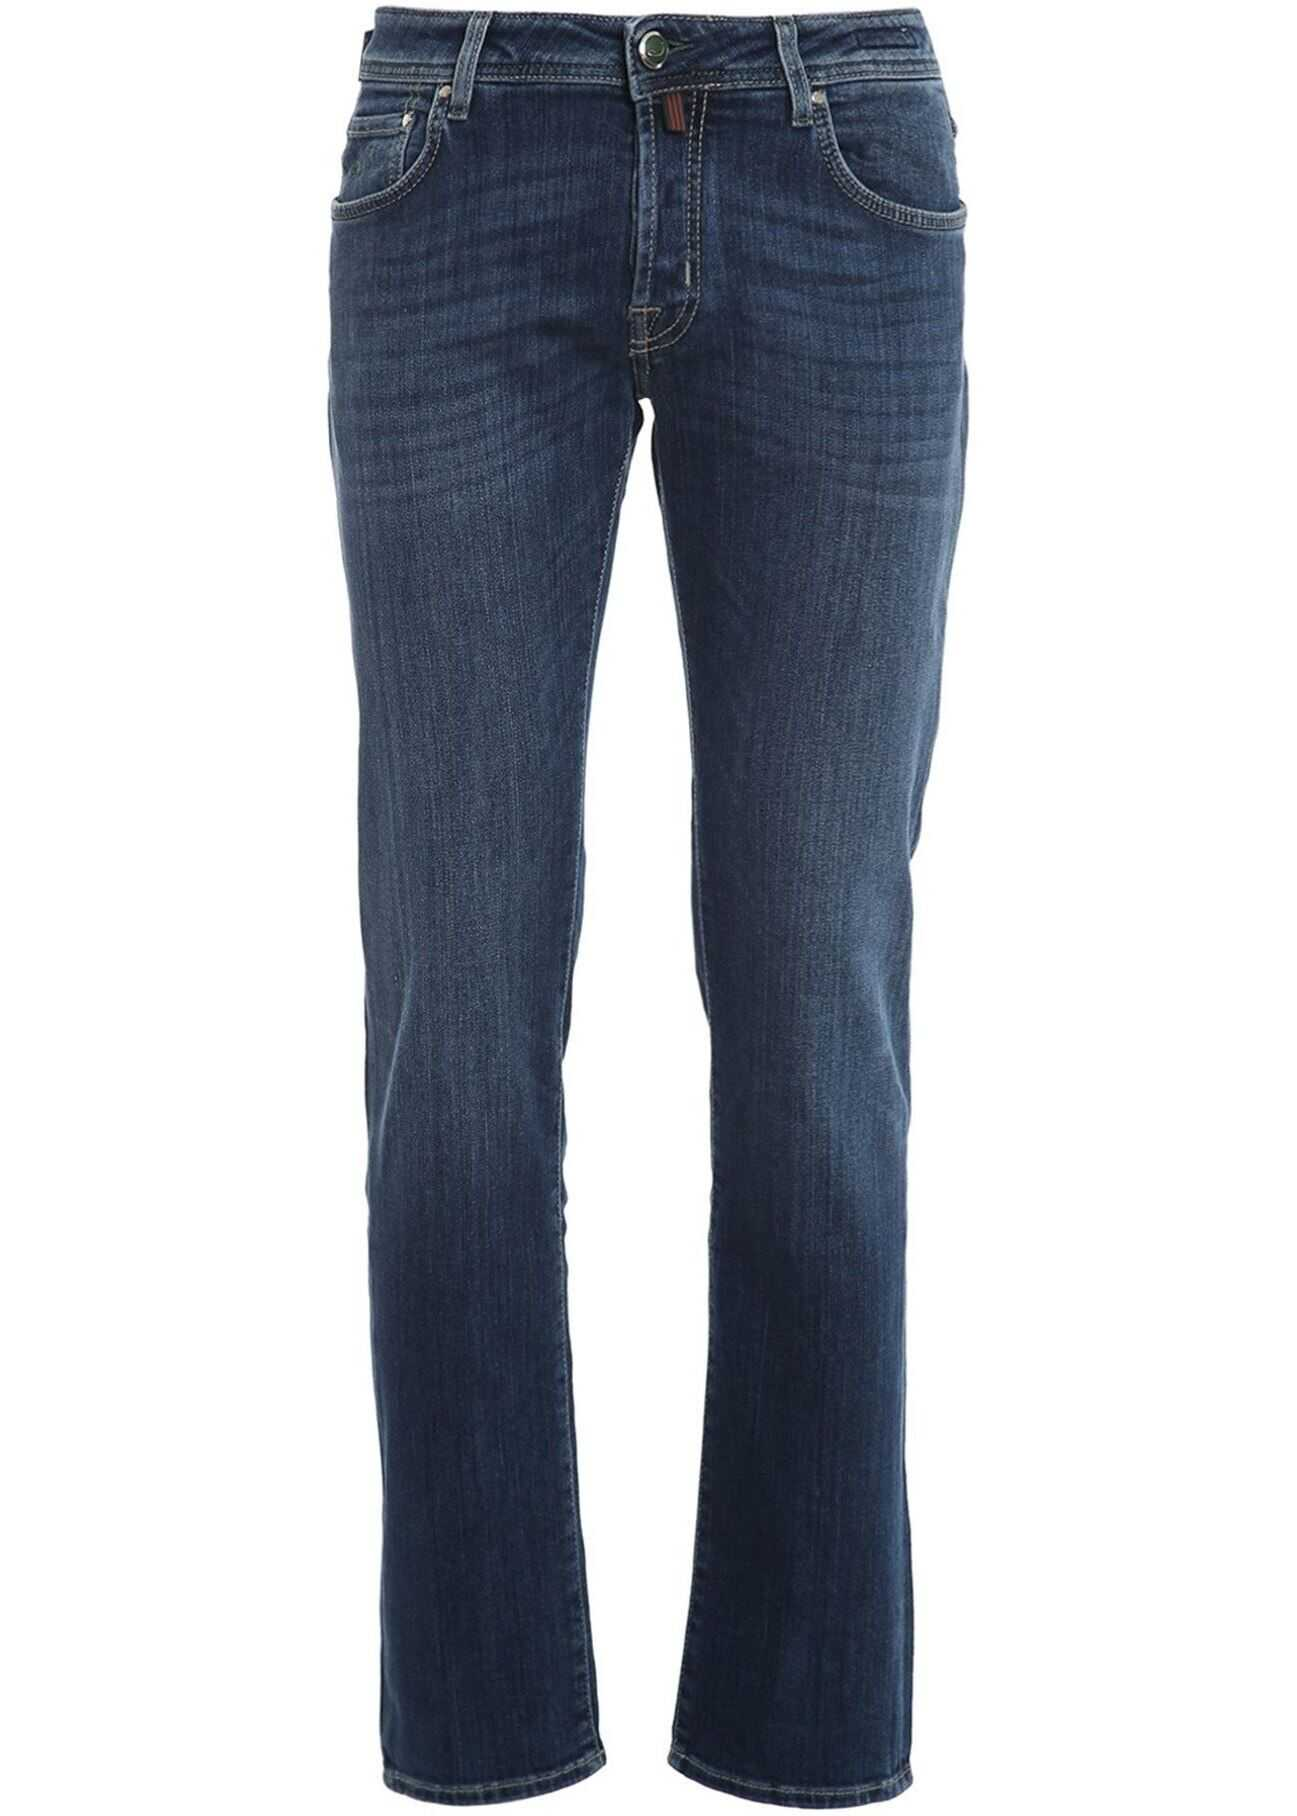 Jacob Cohen Denim Jeans In Blue Blue imagine